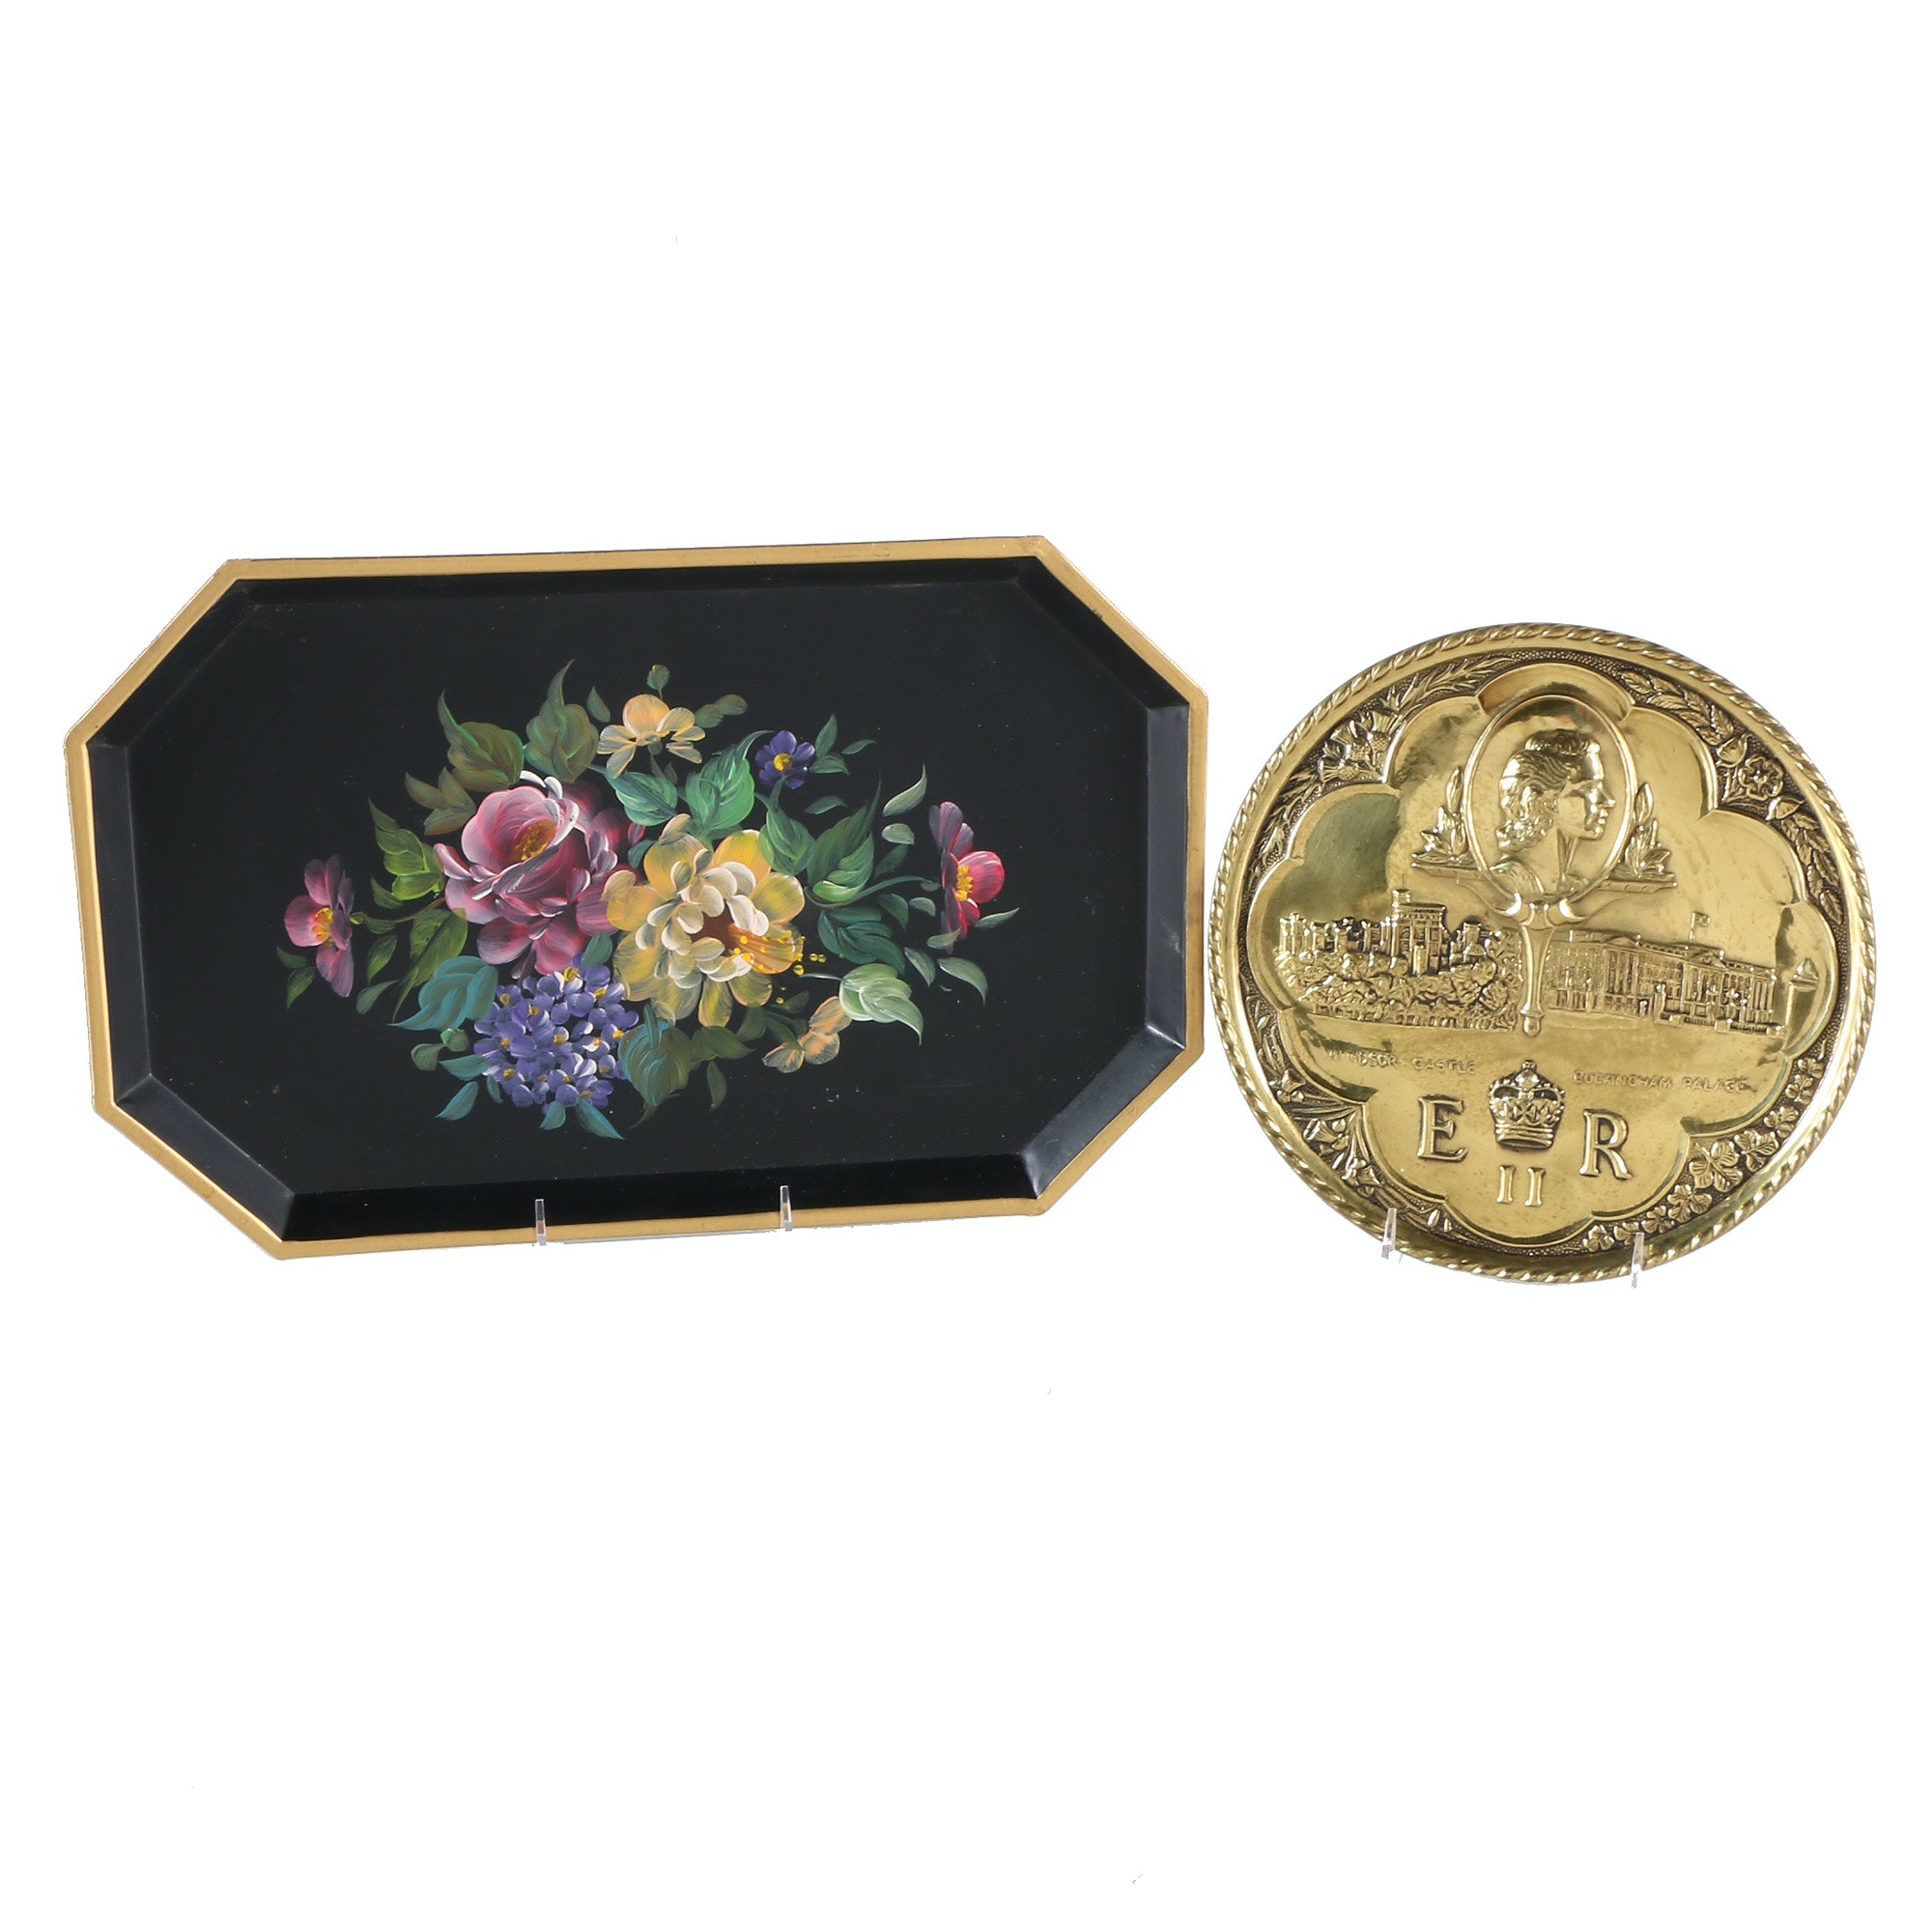 Decorative Tray and Plate